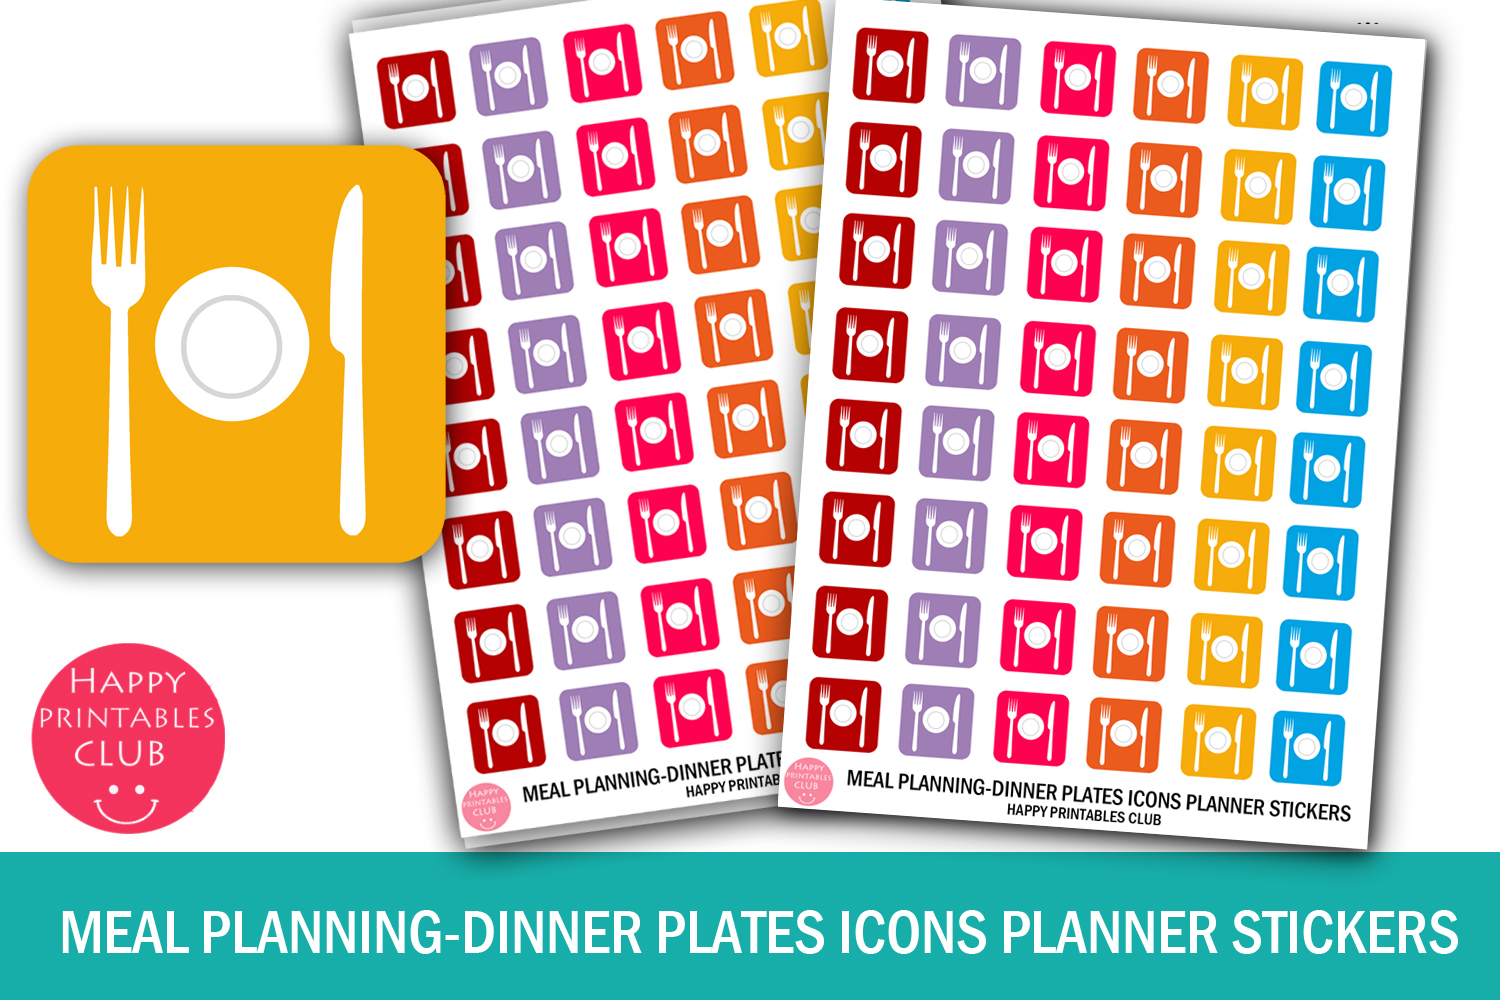 Download Free Meal Planning Icons Planner Stickers Graphic By Happy Printables for Cricut Explore, Silhouette and other cutting machines.